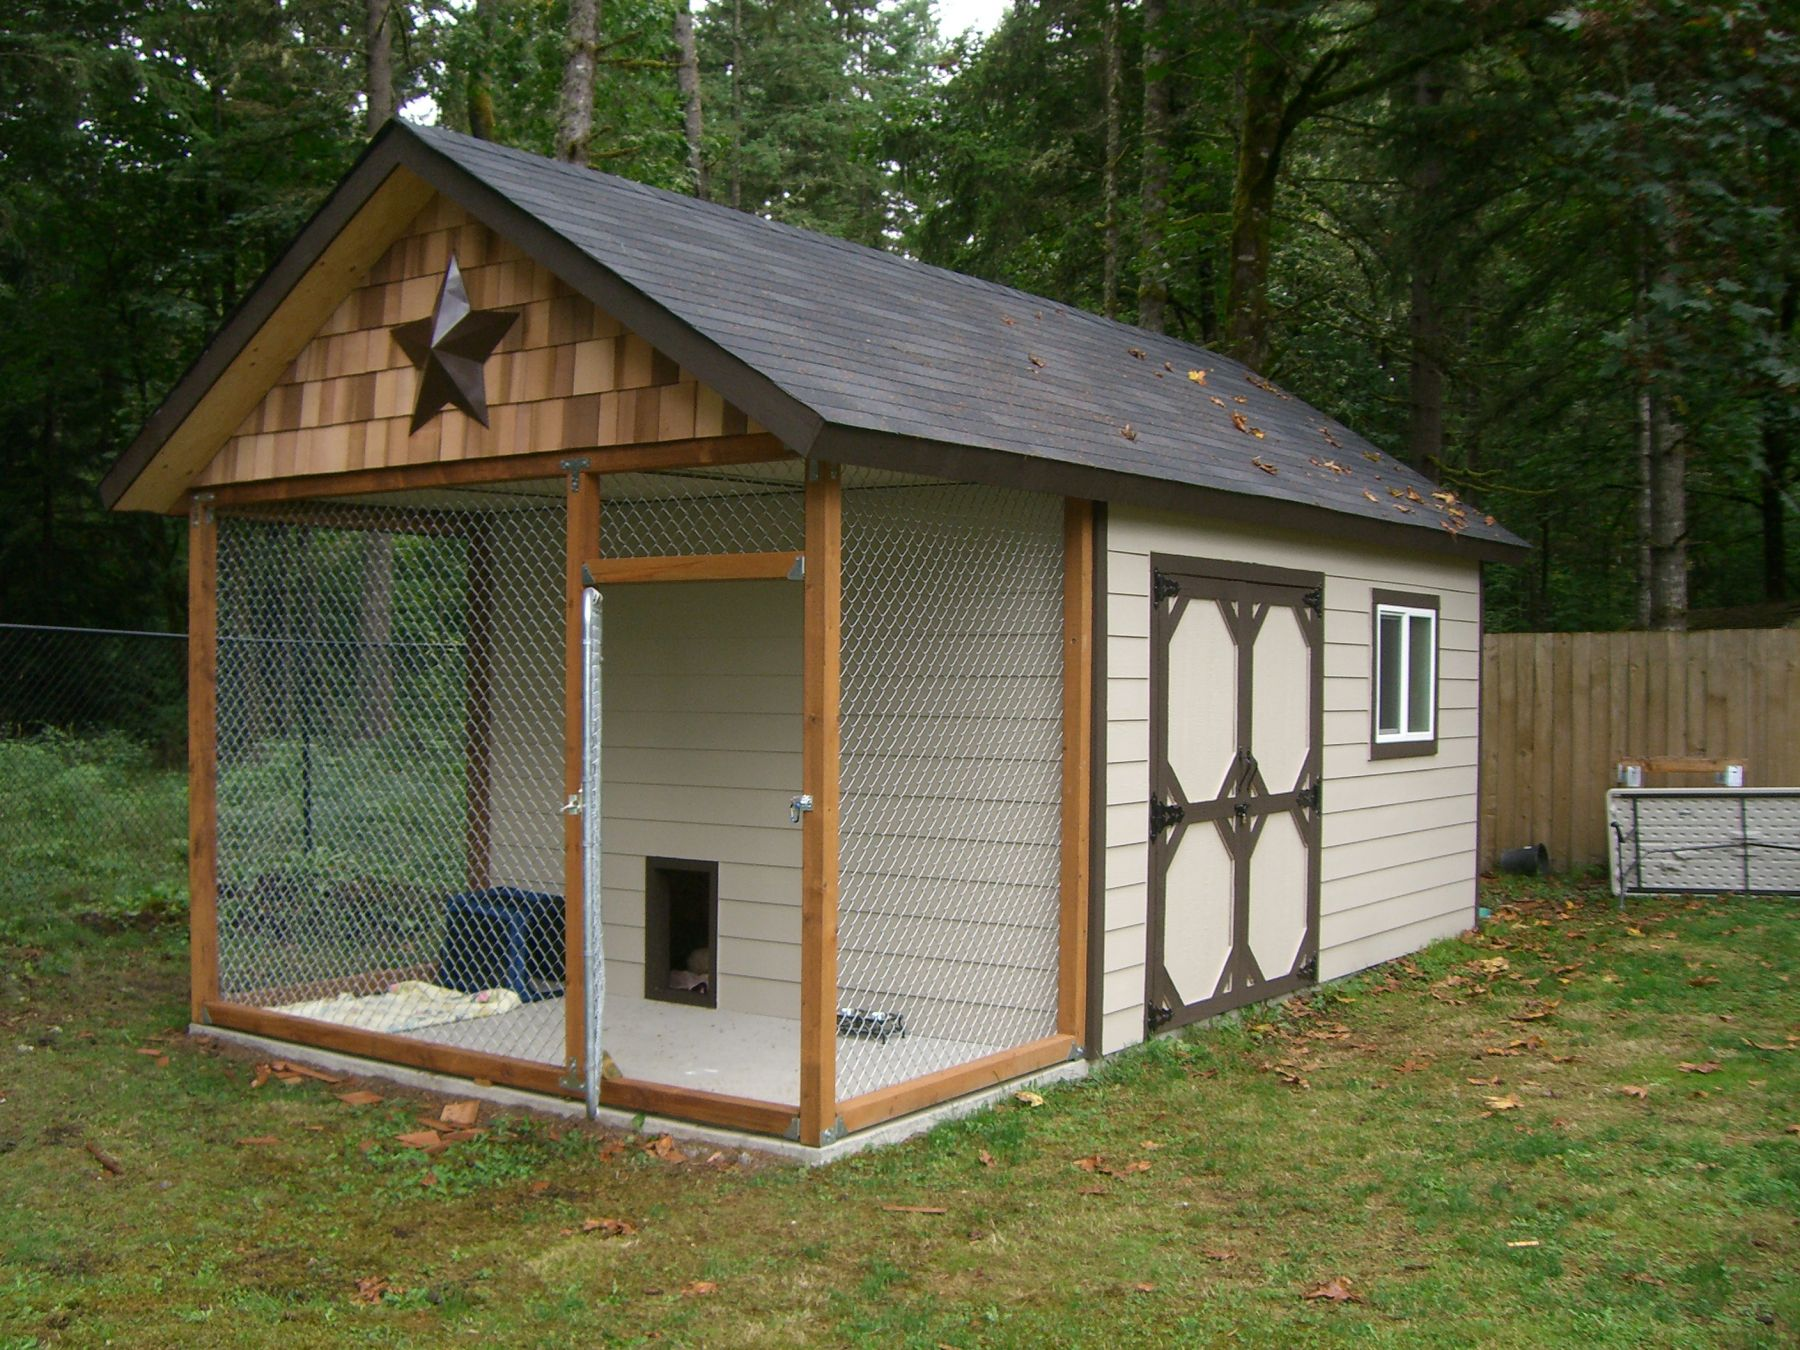 home depot outdoor insulation with Doghouse Shed Design Ideas on 50165301 together with Cooldek Roofing together with Doghouse Shed Design Ideas likewise Heat Tape 9065000000007C1 moreover 202819657.